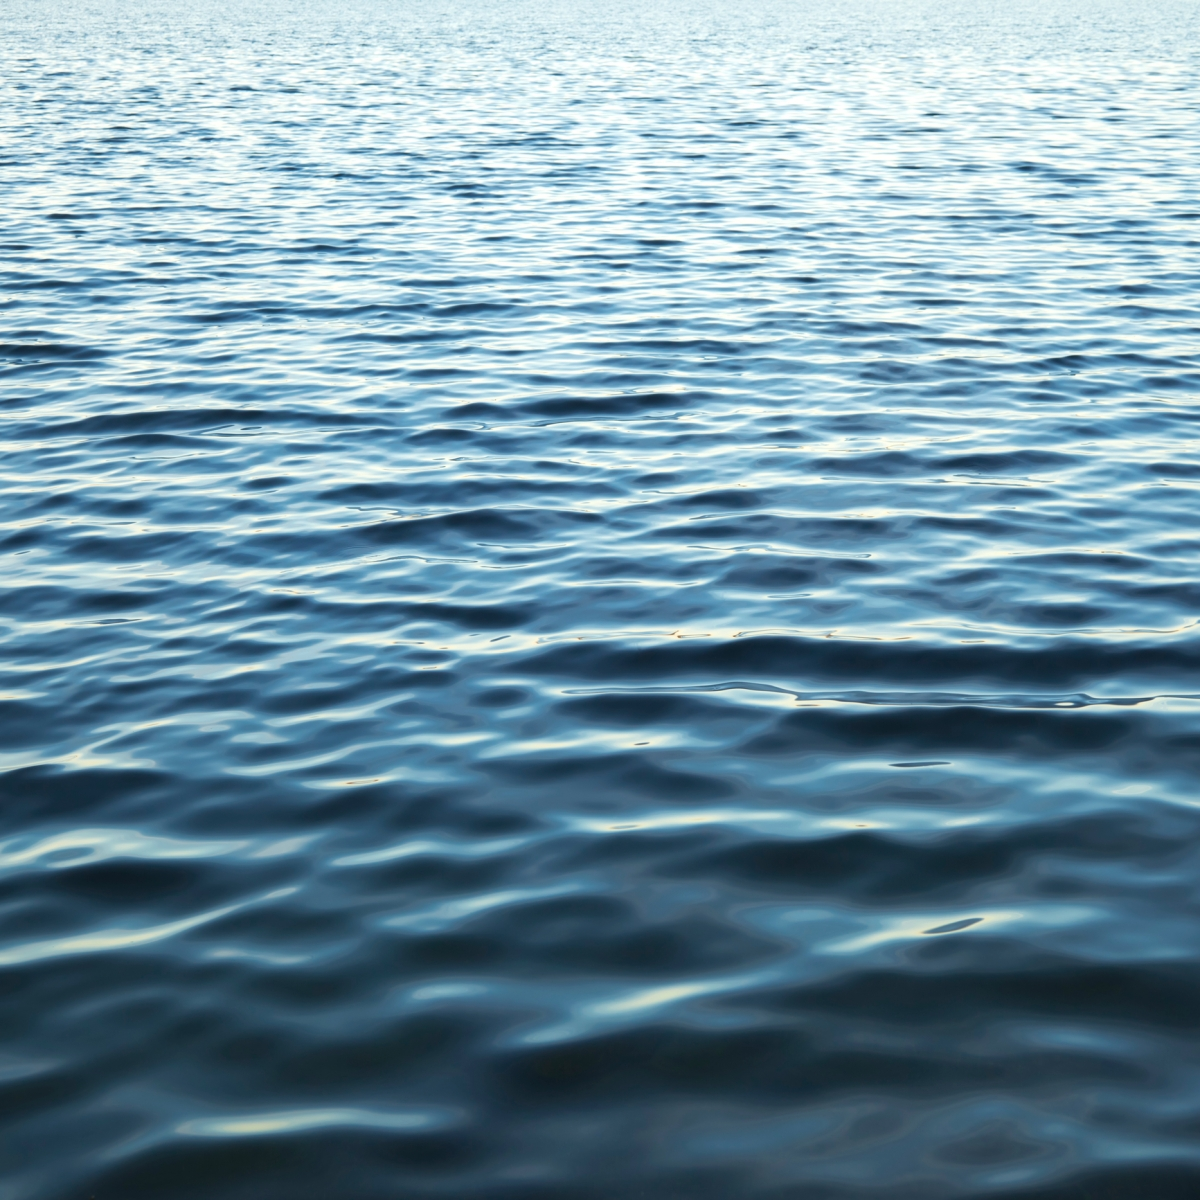 An image of a large body of water